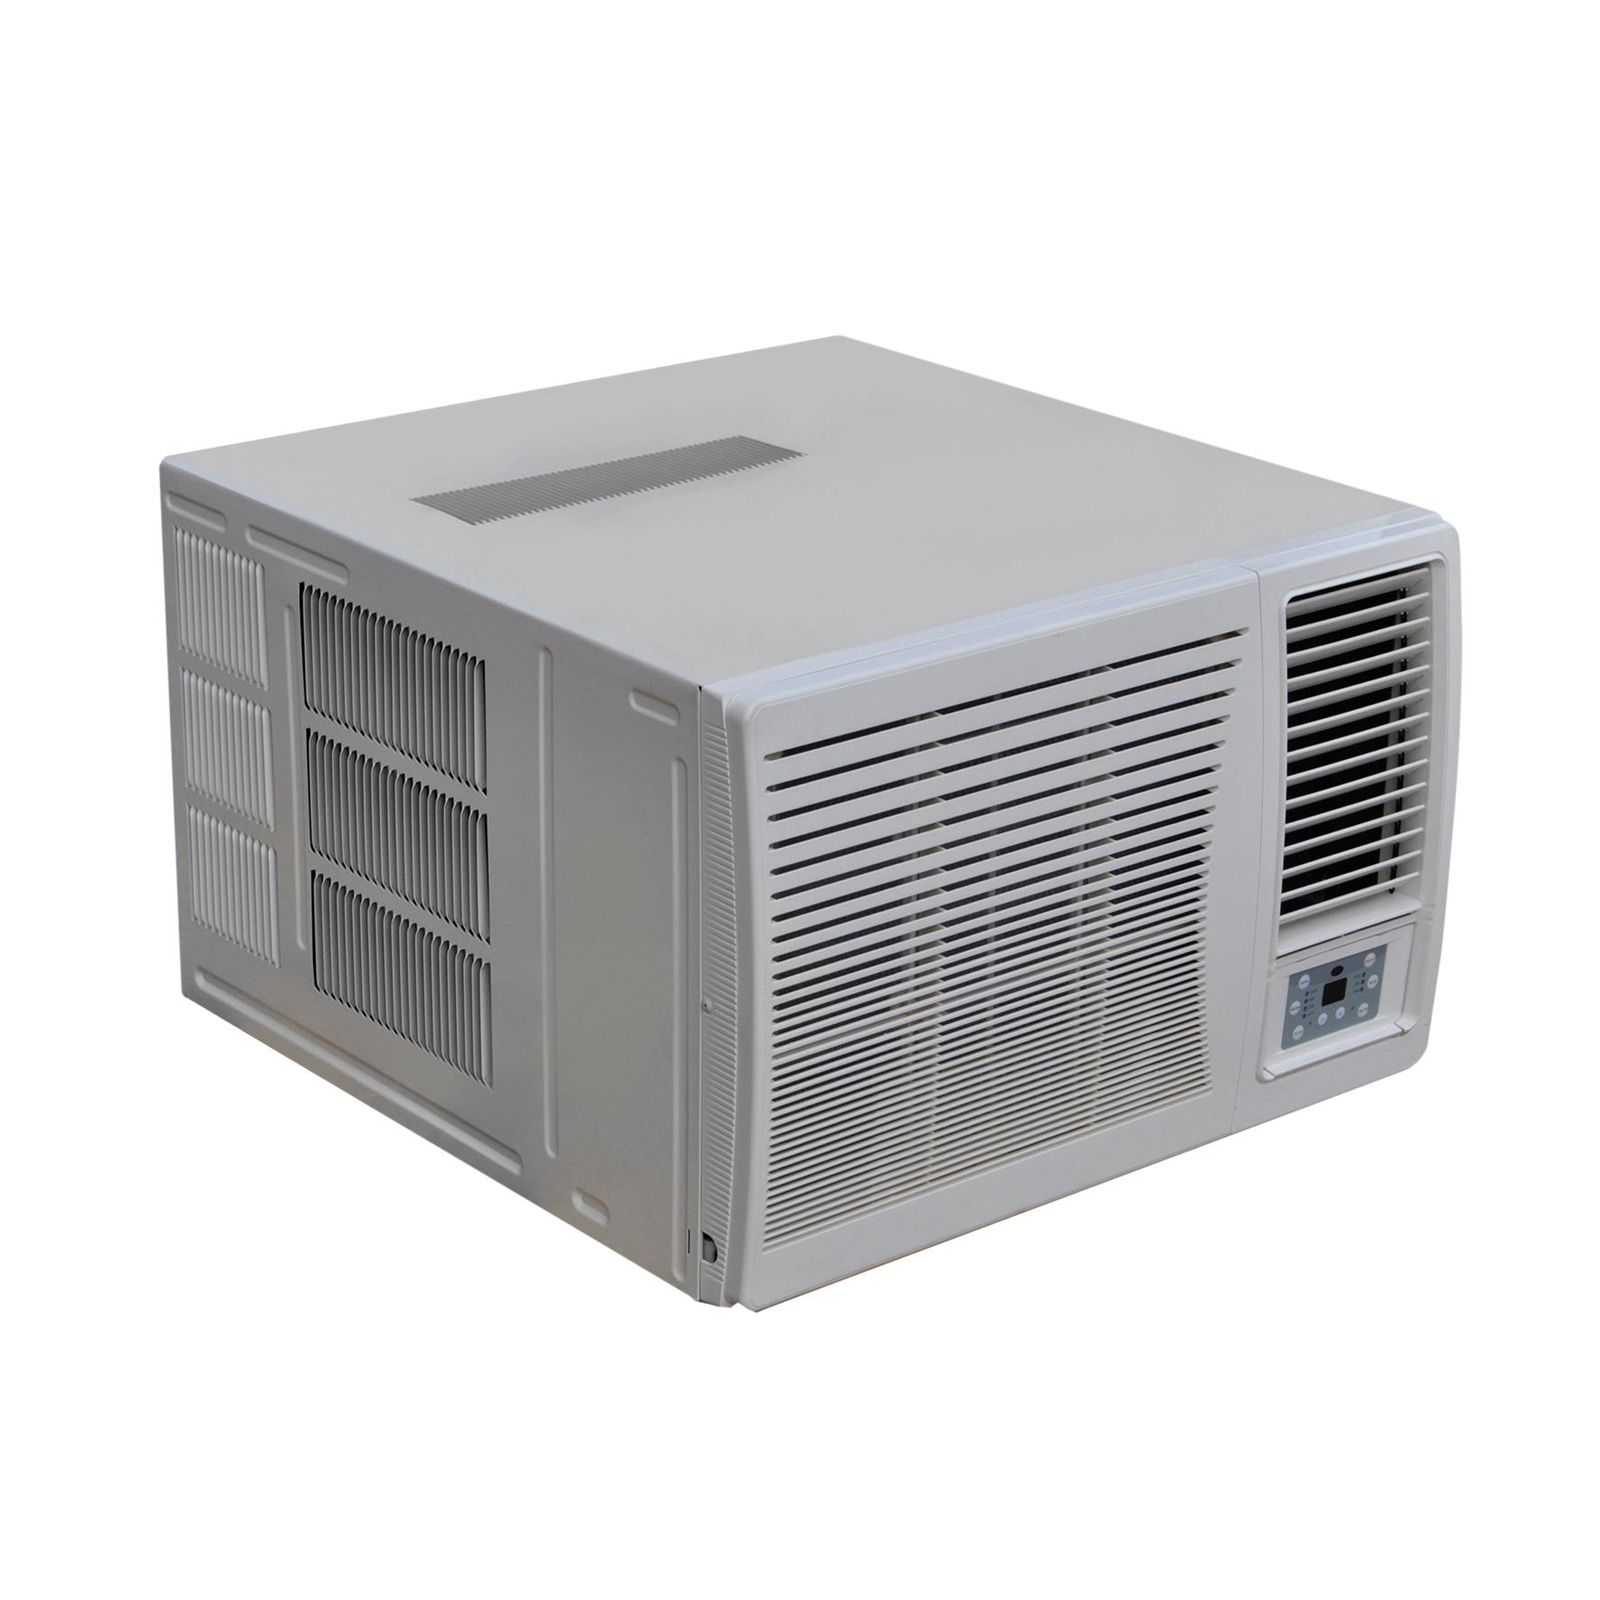 Prem i air eh0537 window unit air conditioner cooling only for 12000 btu ac heater window unit